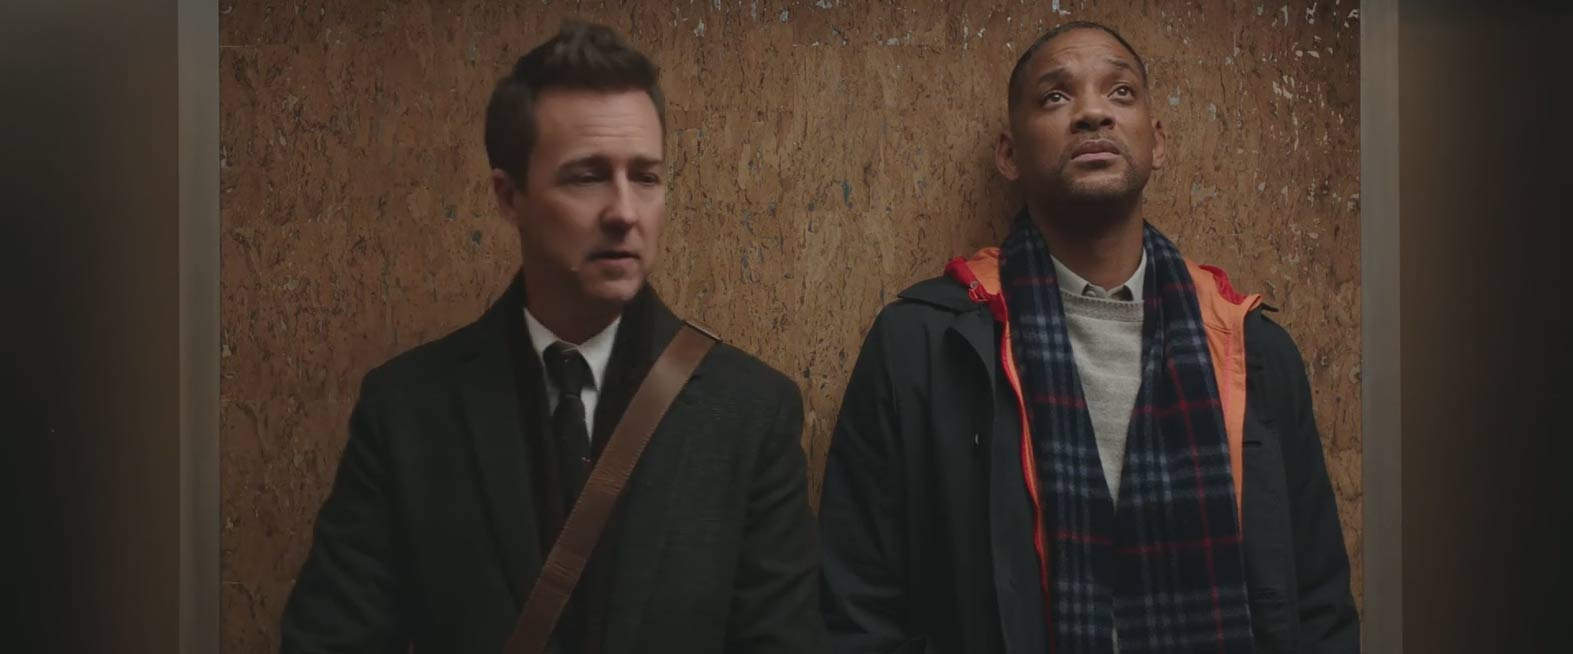 Collateral Beauty Trailer Screen Shot 1